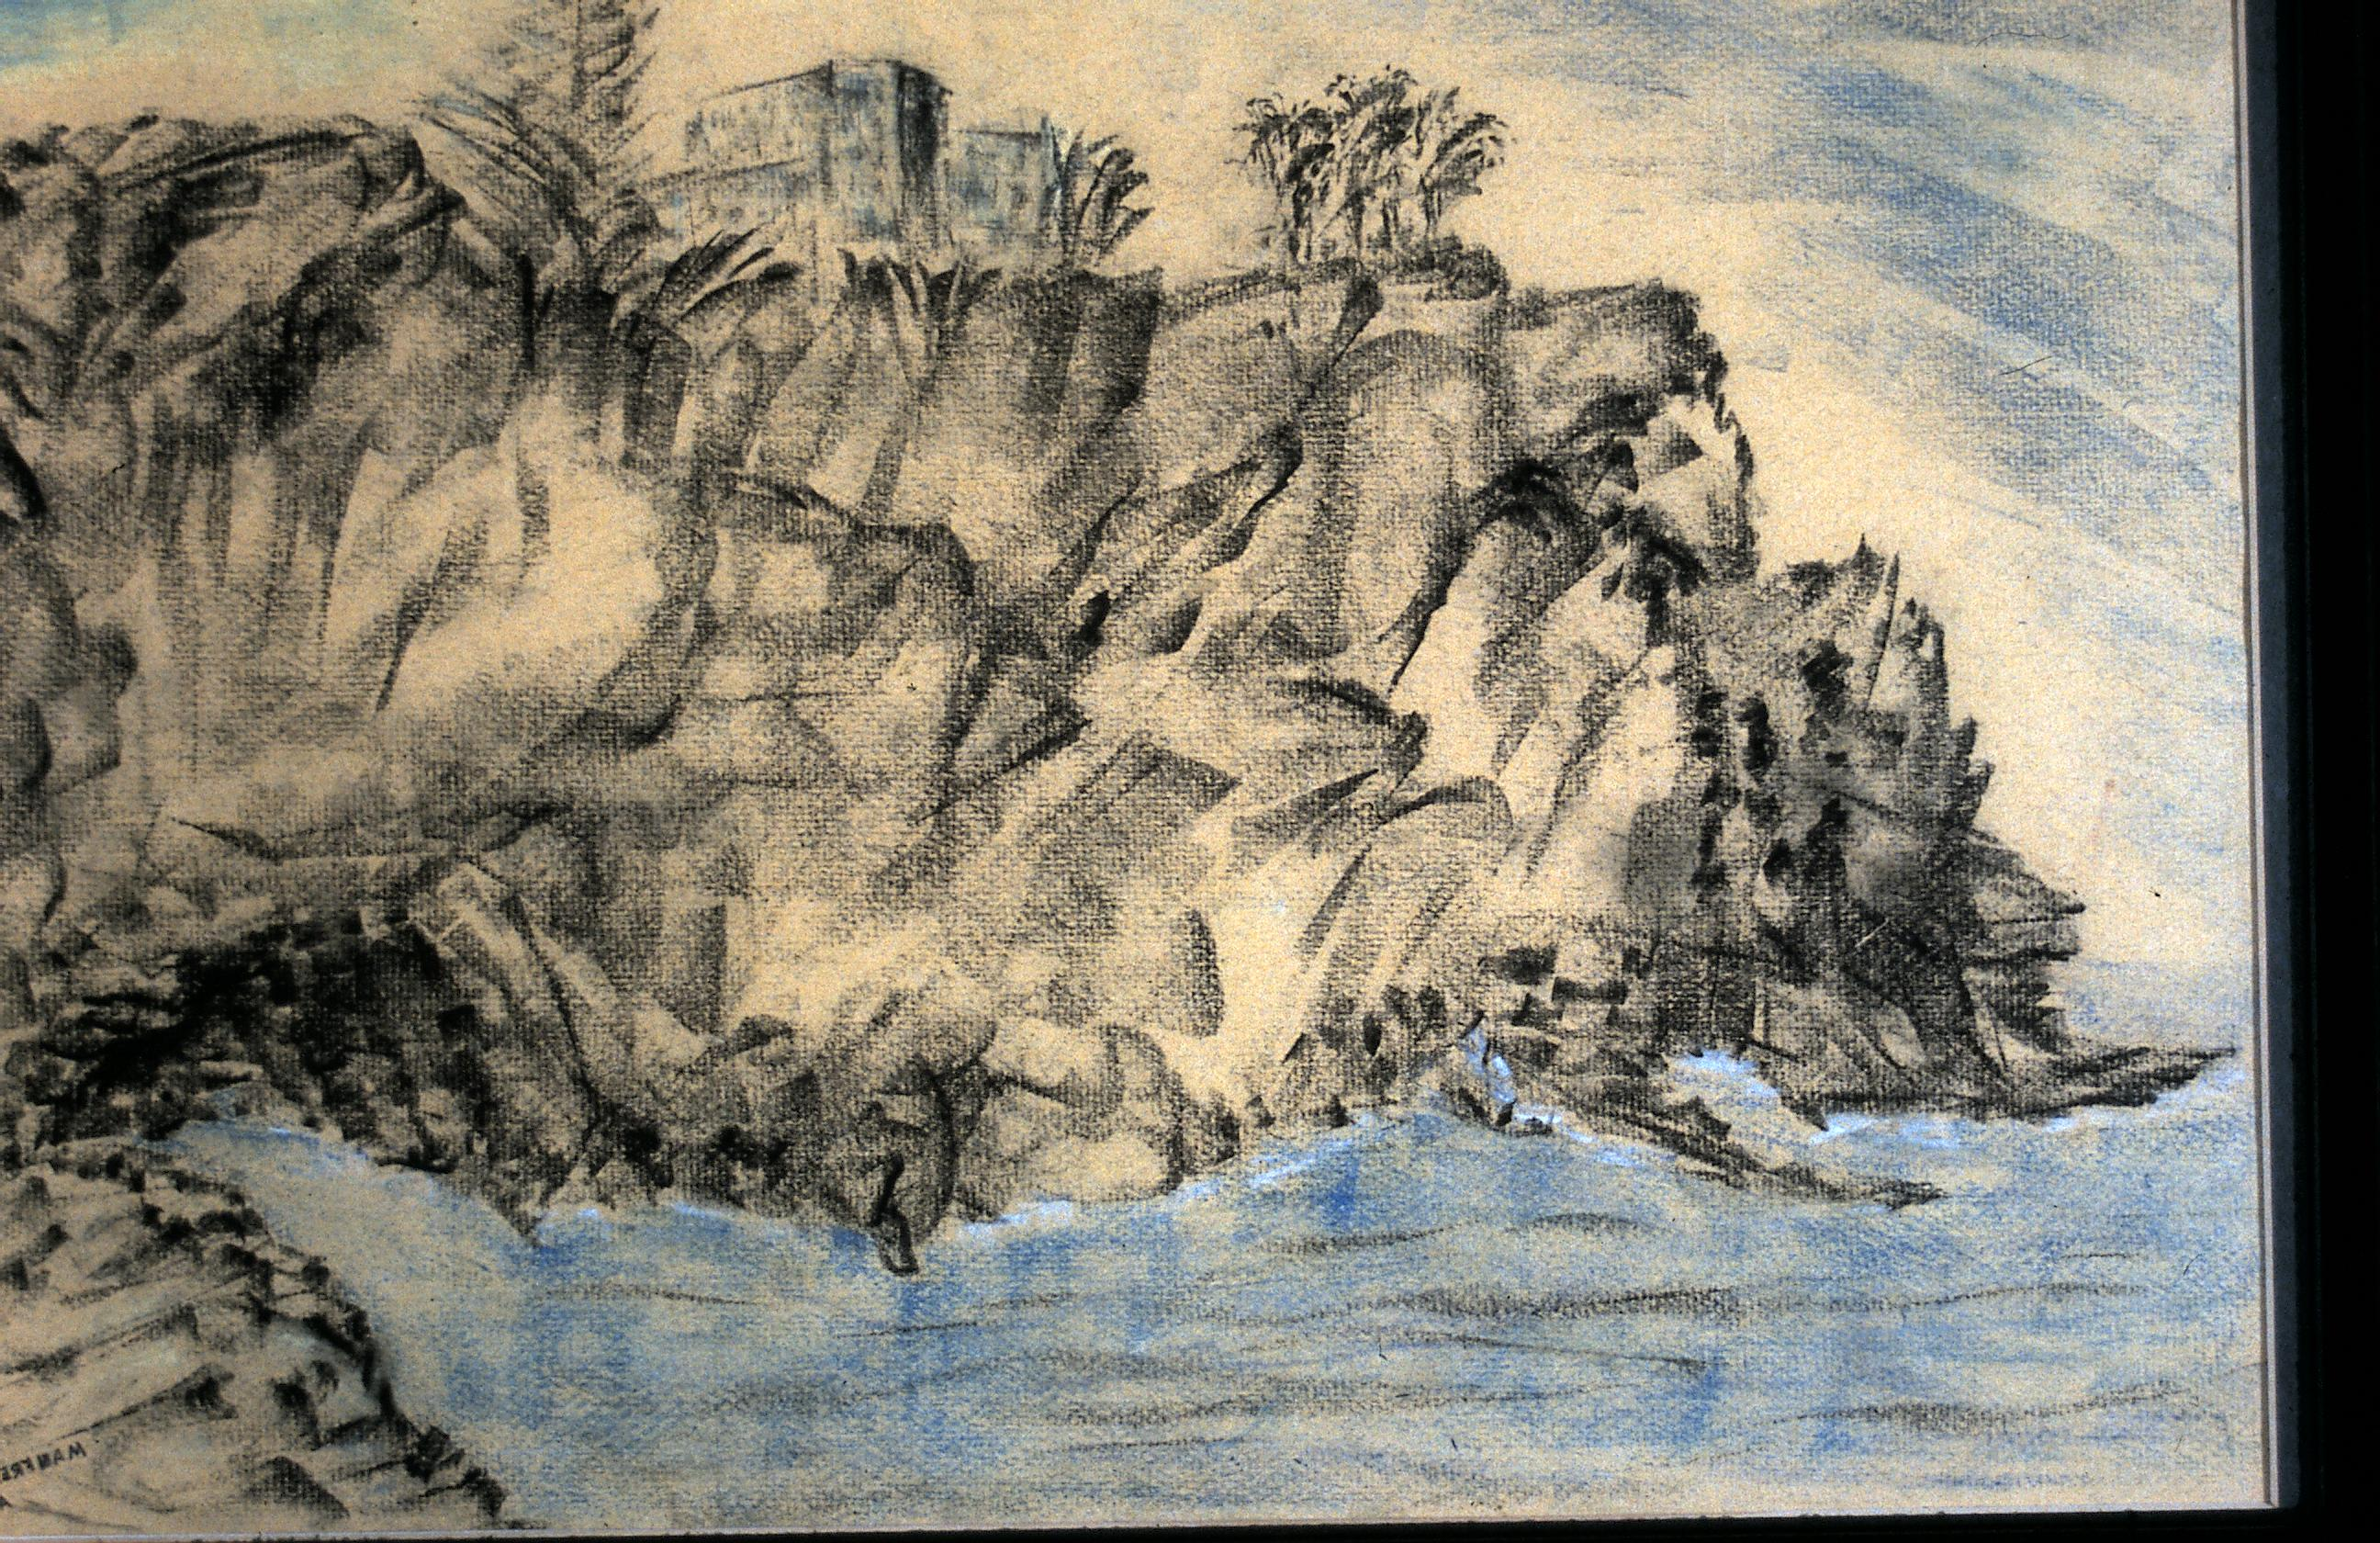 Manfred Altman, b. 1910